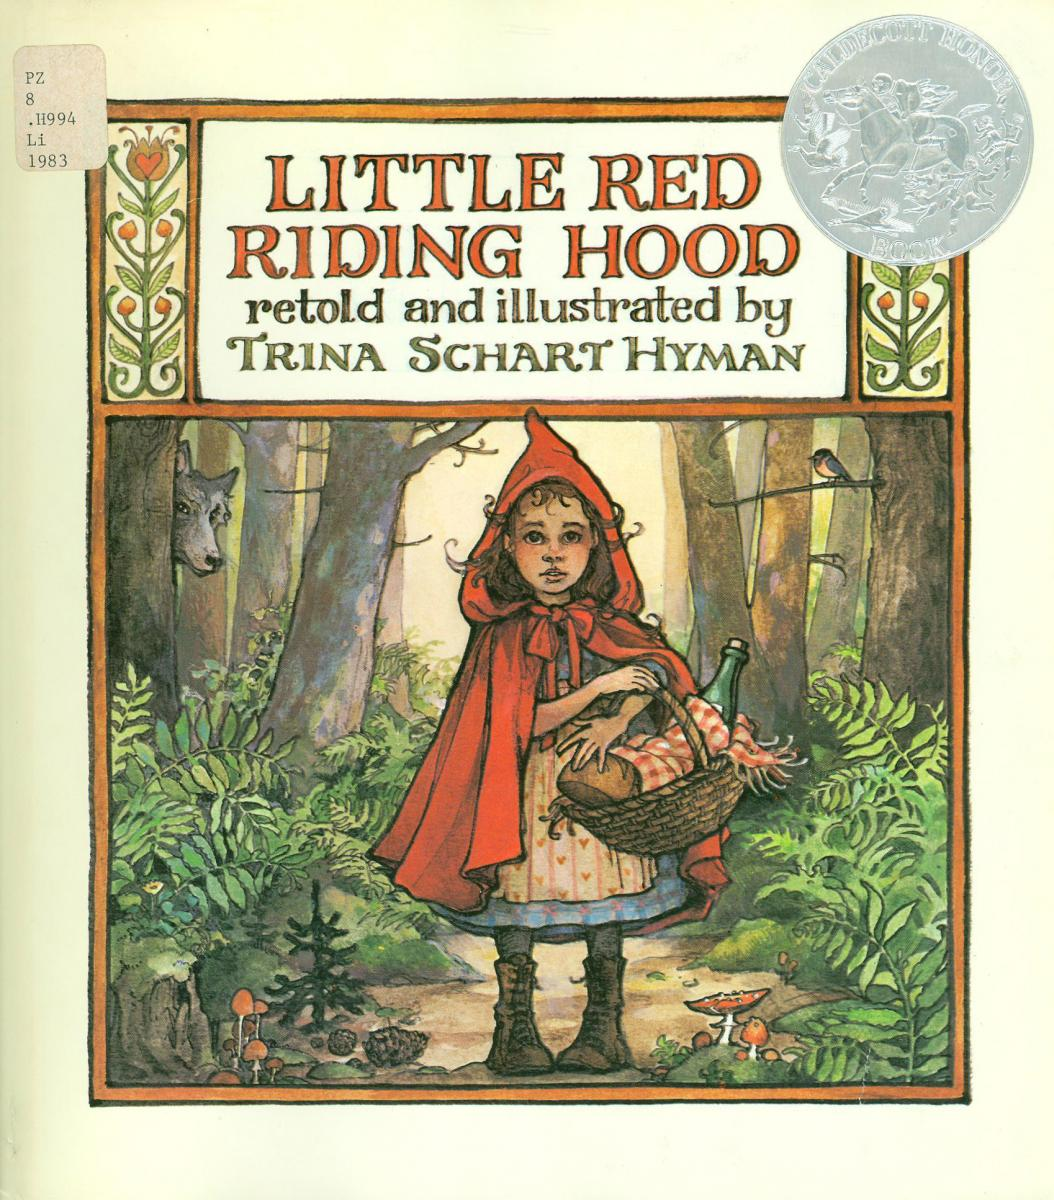 Little Red Riding Hood - book cover